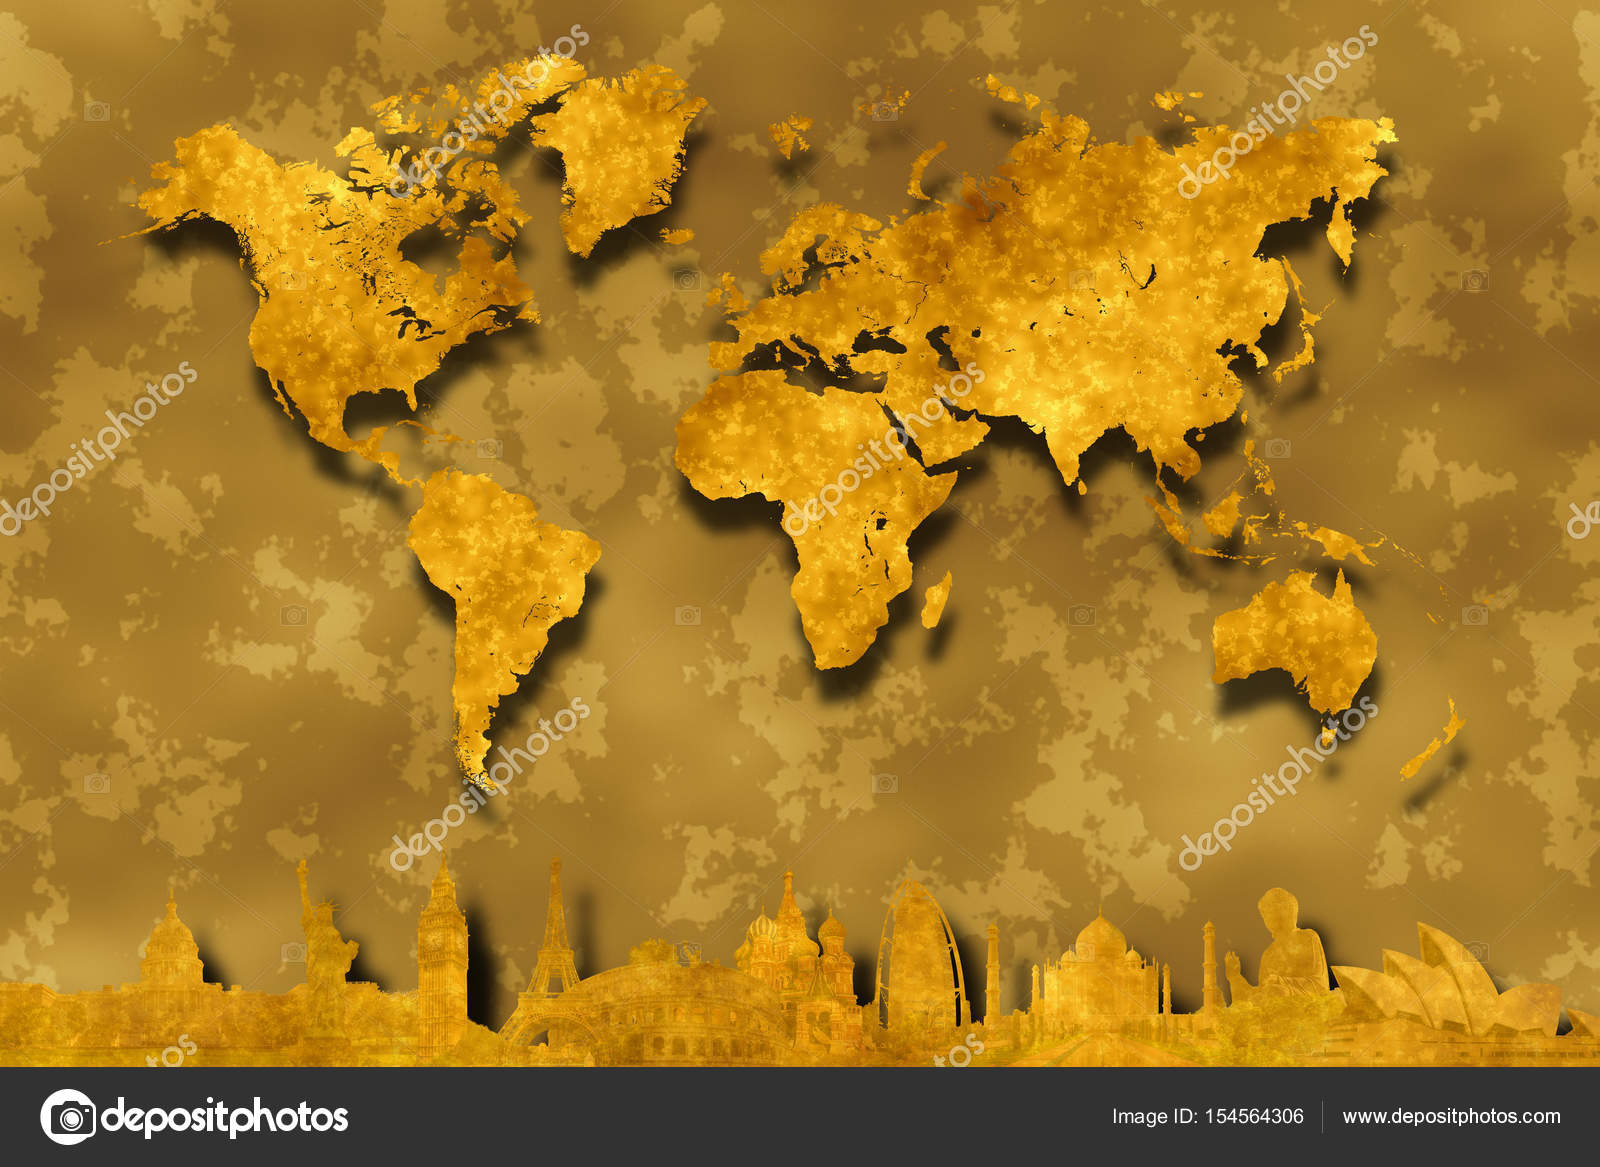 Gold world map on abstract golden background with golden silhouettes gold world map on abstract golden background with golden silhouettes of famous world landmarks from washington new york london paris rome moscow dubai gumiabroncs Image collections